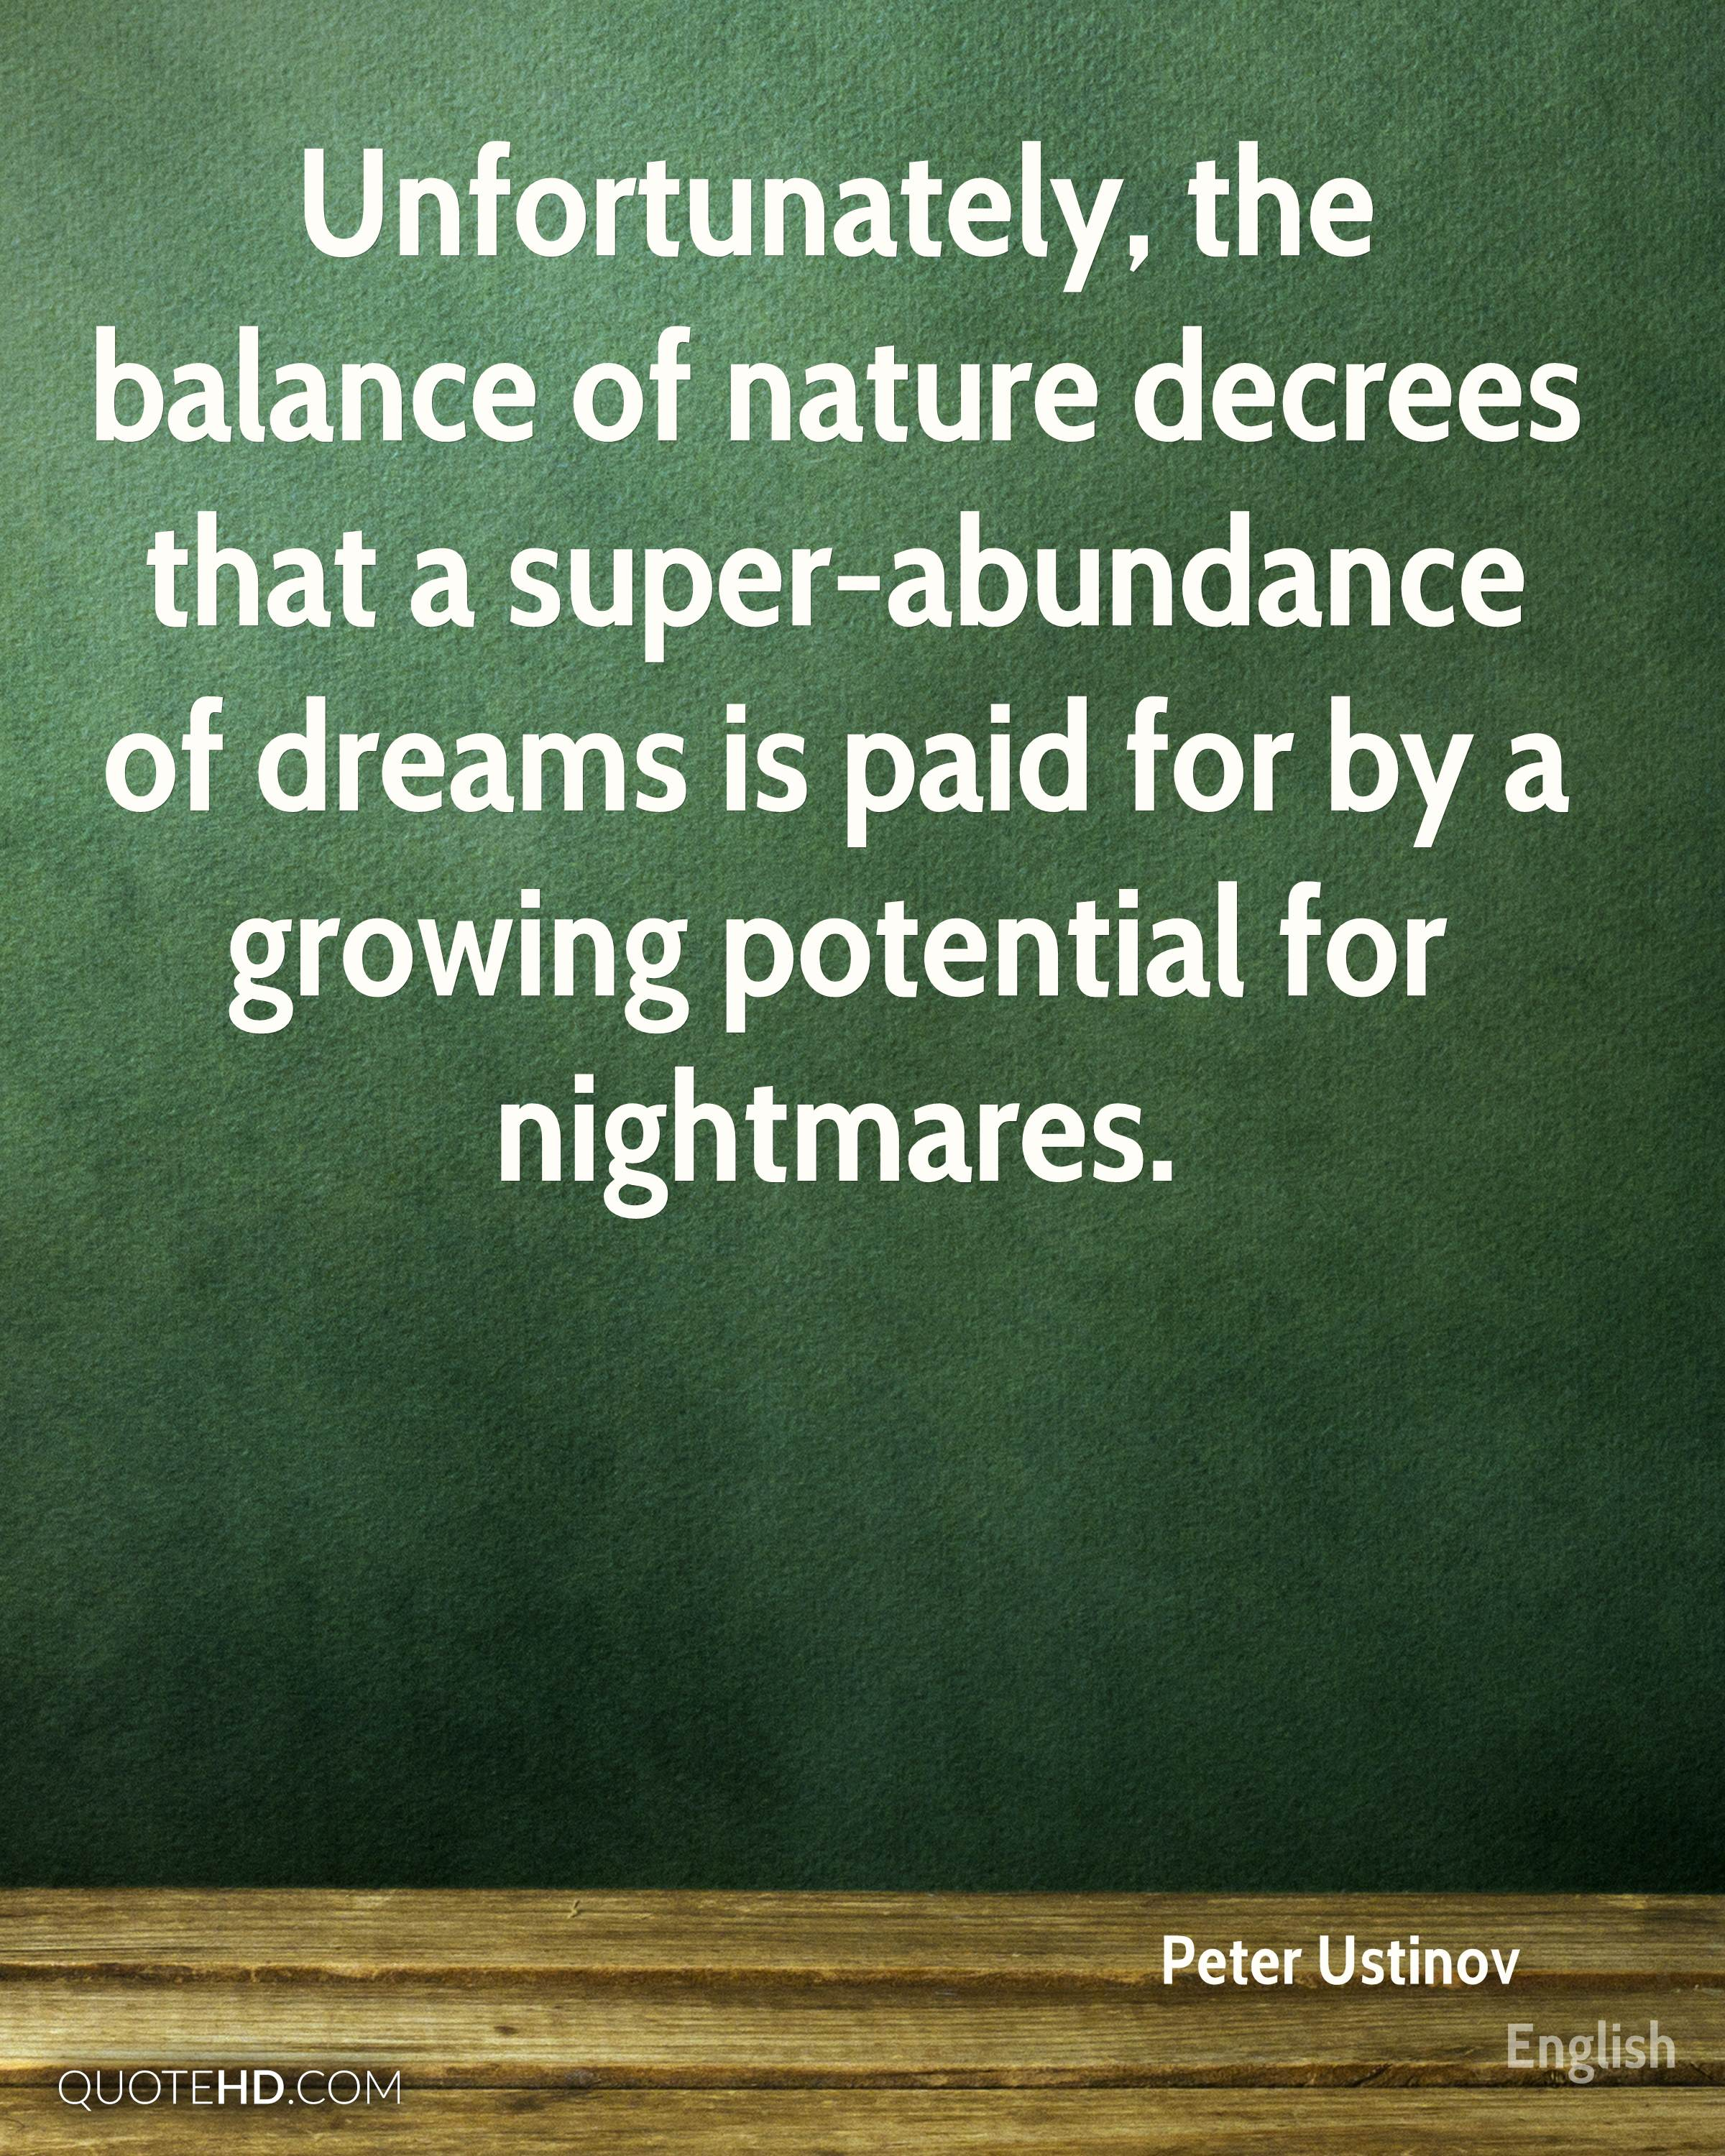 Unfortunately, the balance of nature decrees that a super-abundance of dreams is paid for by a growing potential for nightmares.